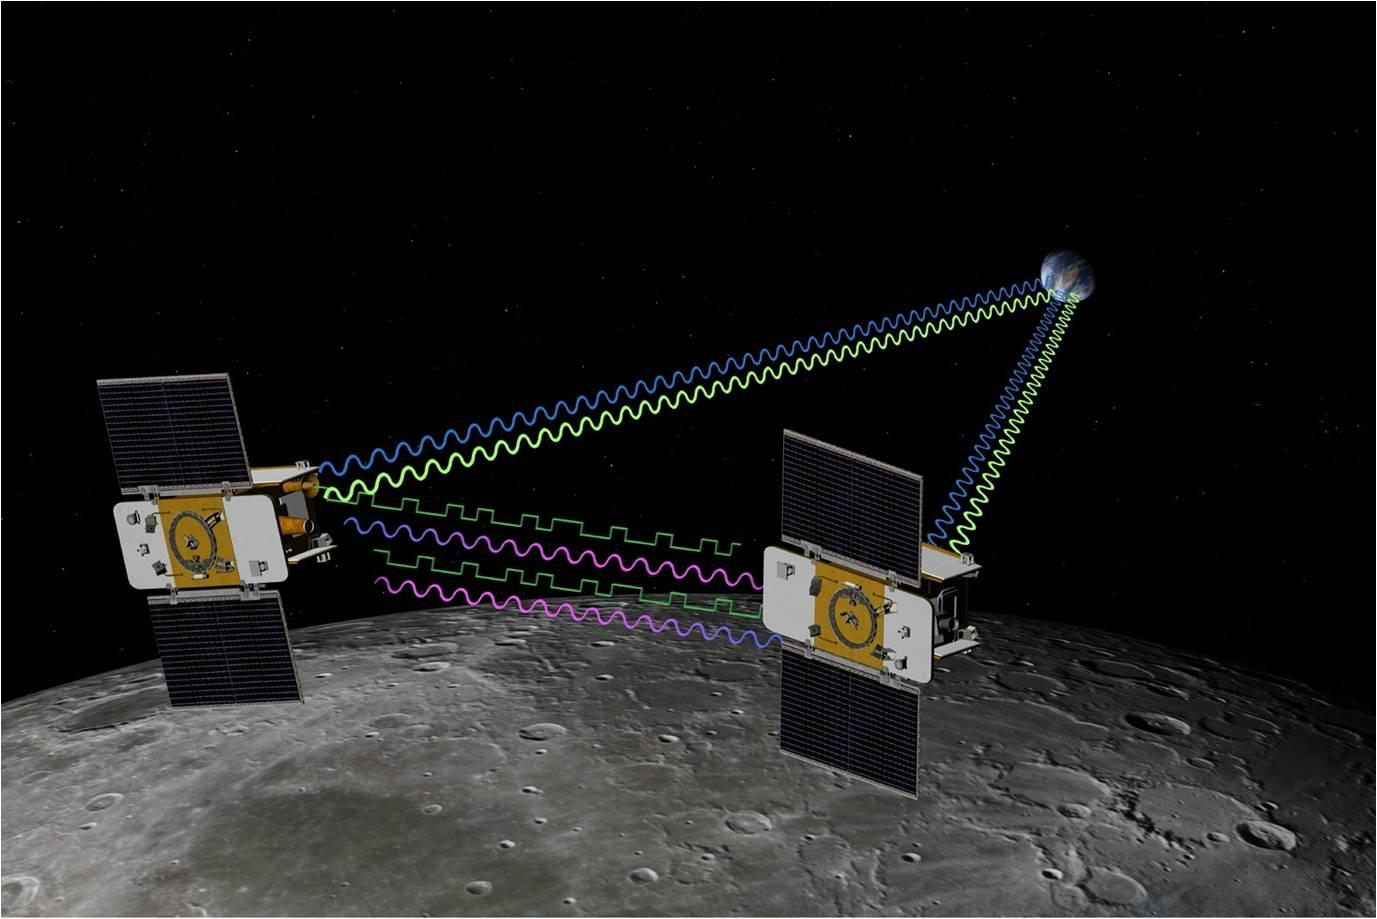 An artist's depiction of the twin spacecraft that comprise NASA's Gravity Recovery And Interior Laboratory (GRAIL) mission (Image: NASA/JPL-Caltech/MIT)